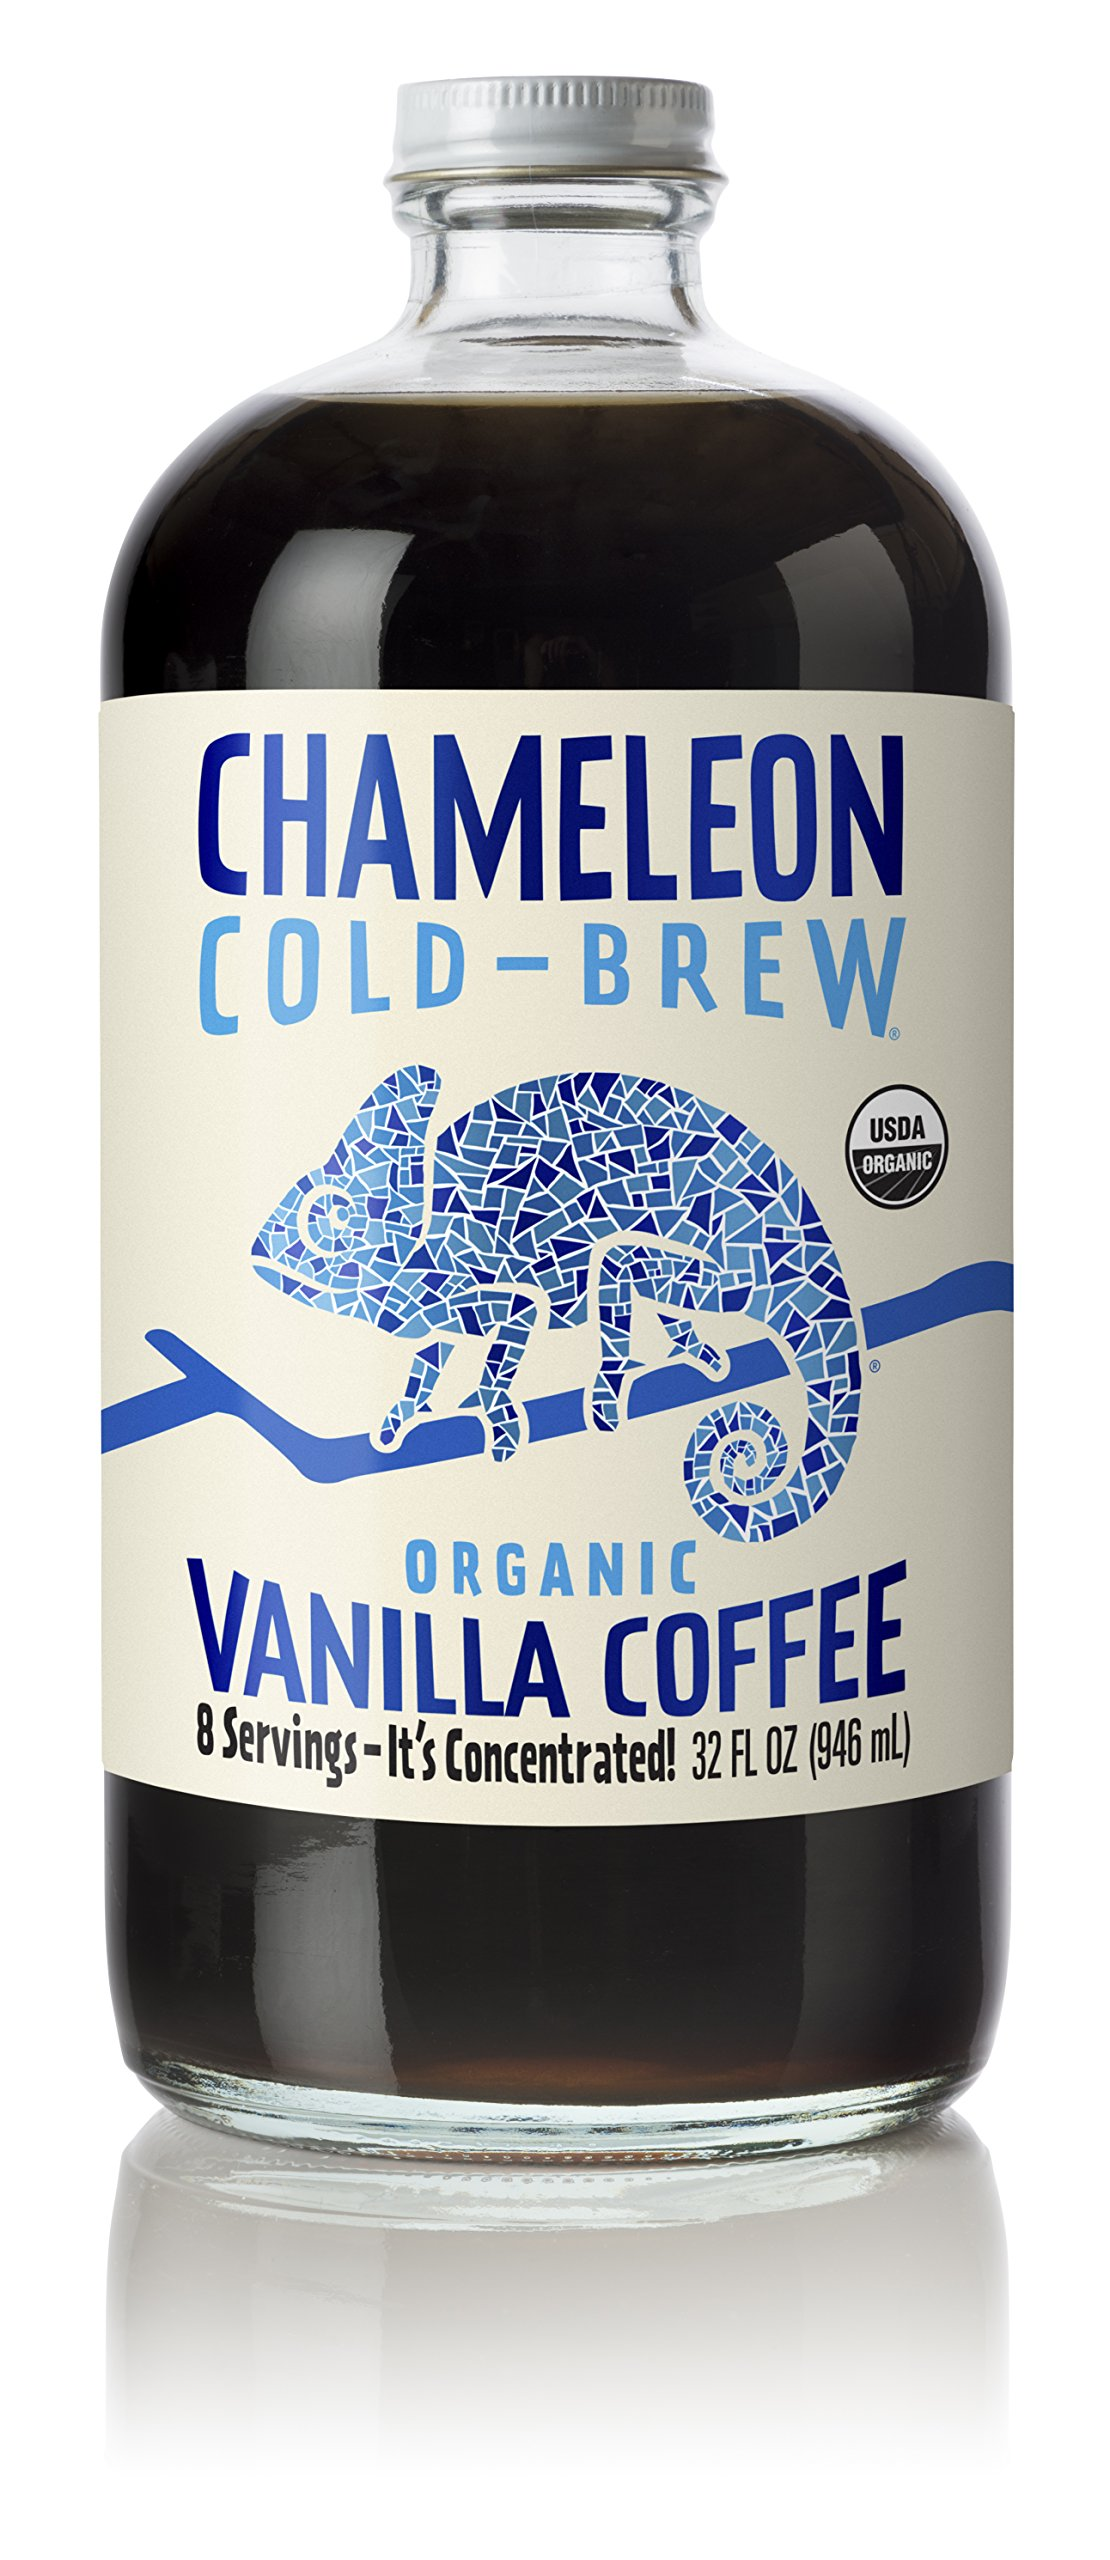 Chameleon Cold-Brew Vanilla Coffee Concentrate 6 pack